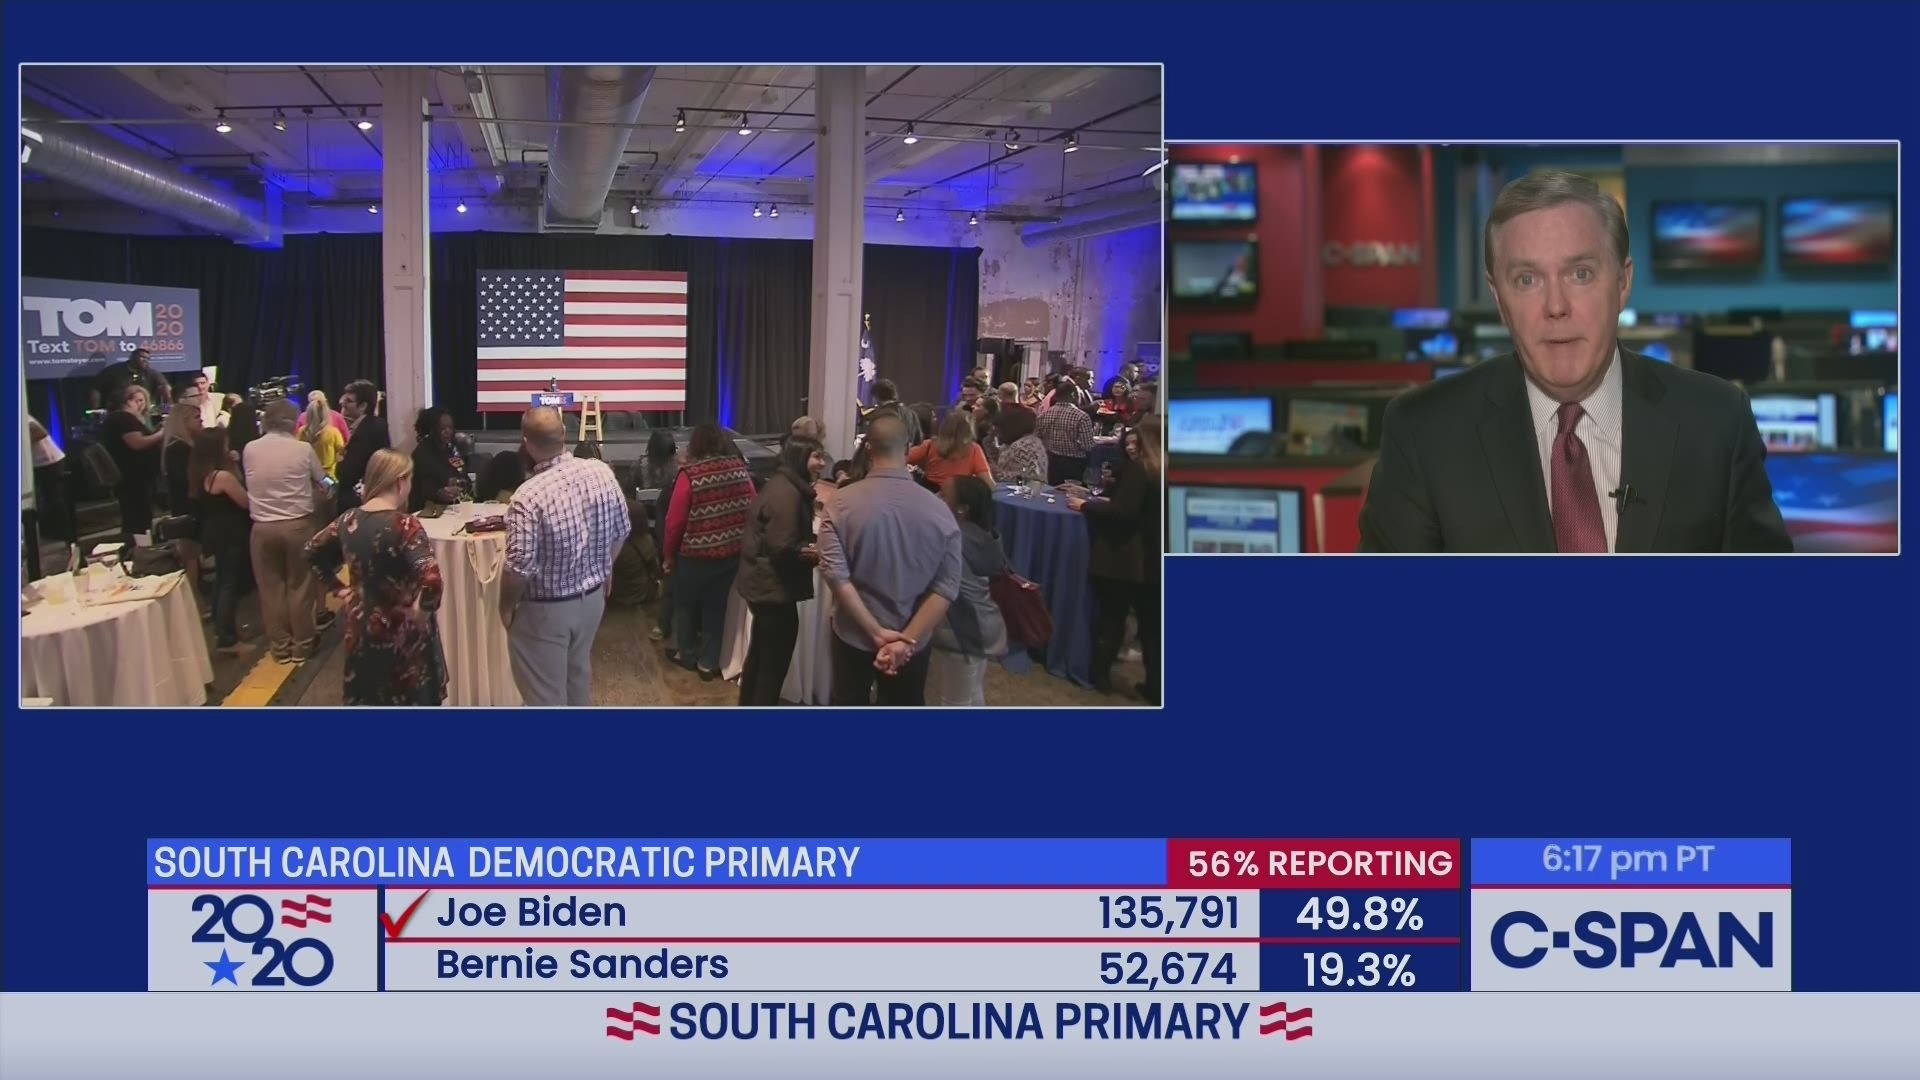 South Carolina Democratic Primary Coverage And Speeches C Span Org Eat hot chip & lie. campaign 2020